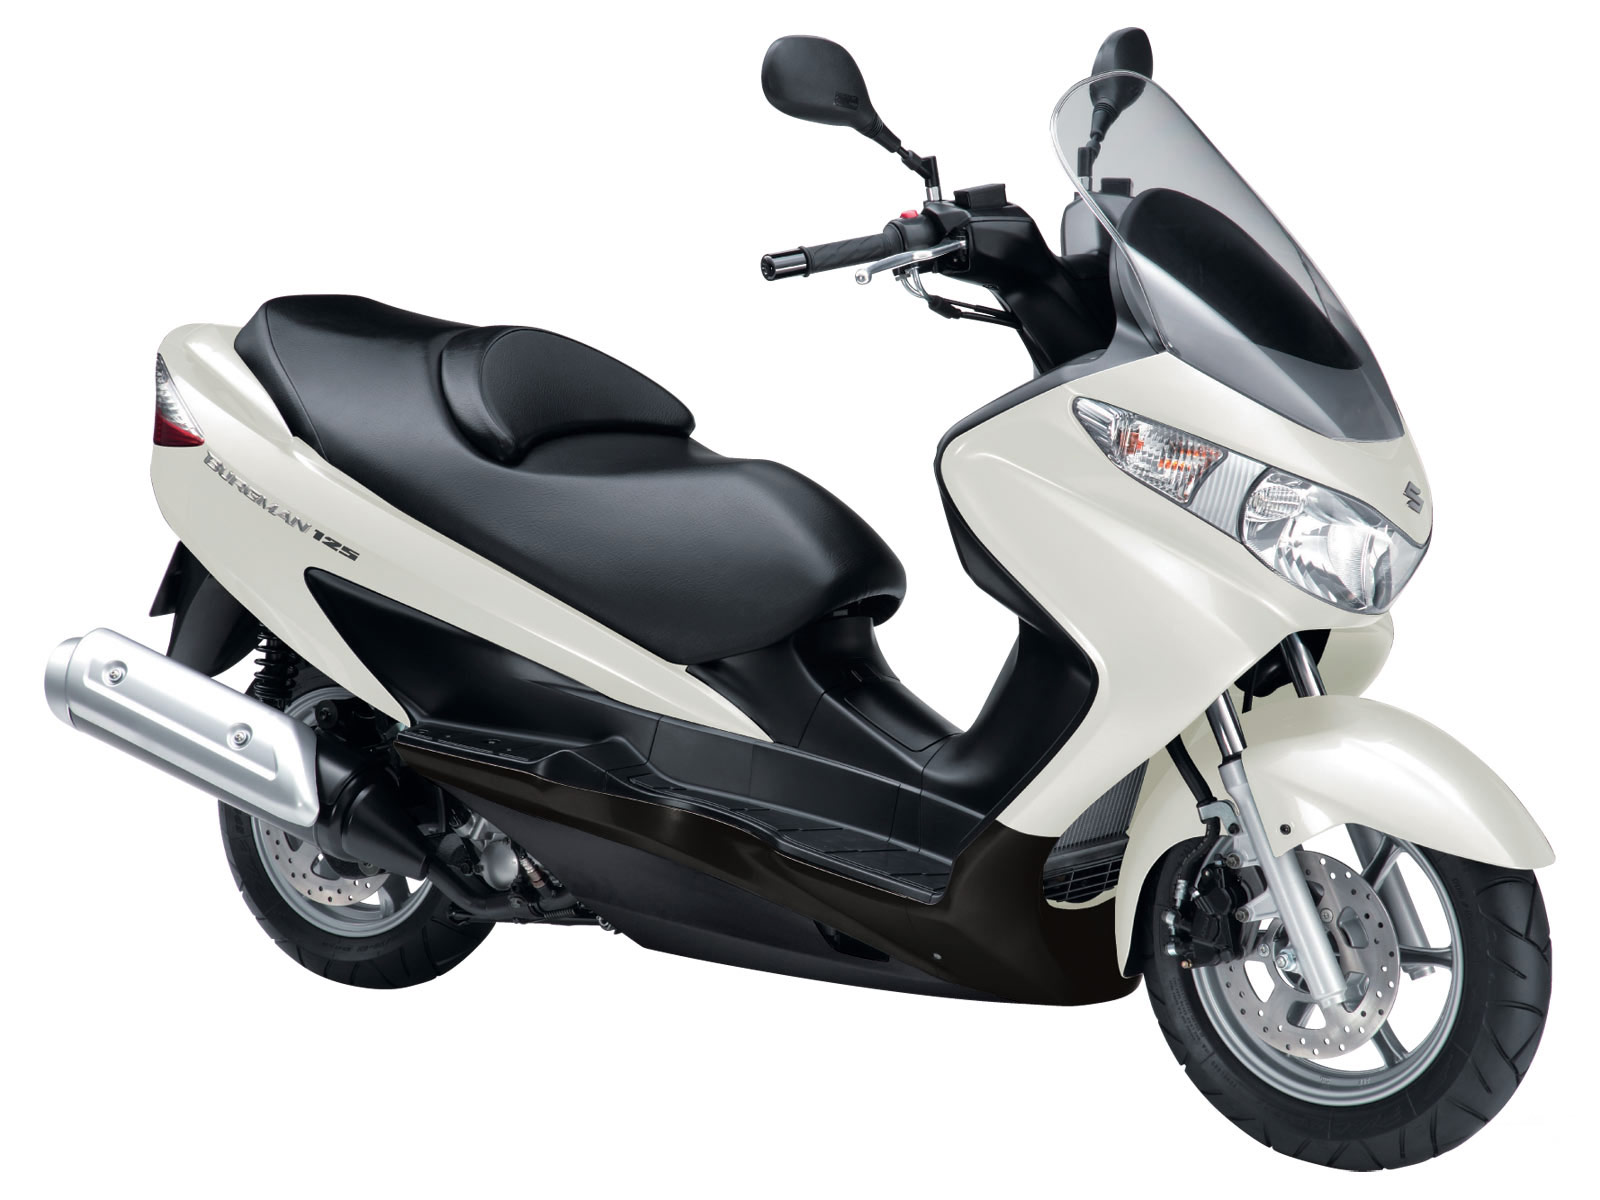 2010 suzuki an burgman 125 scooter pictures specifications. Black Bedroom Furniture Sets. Home Design Ideas